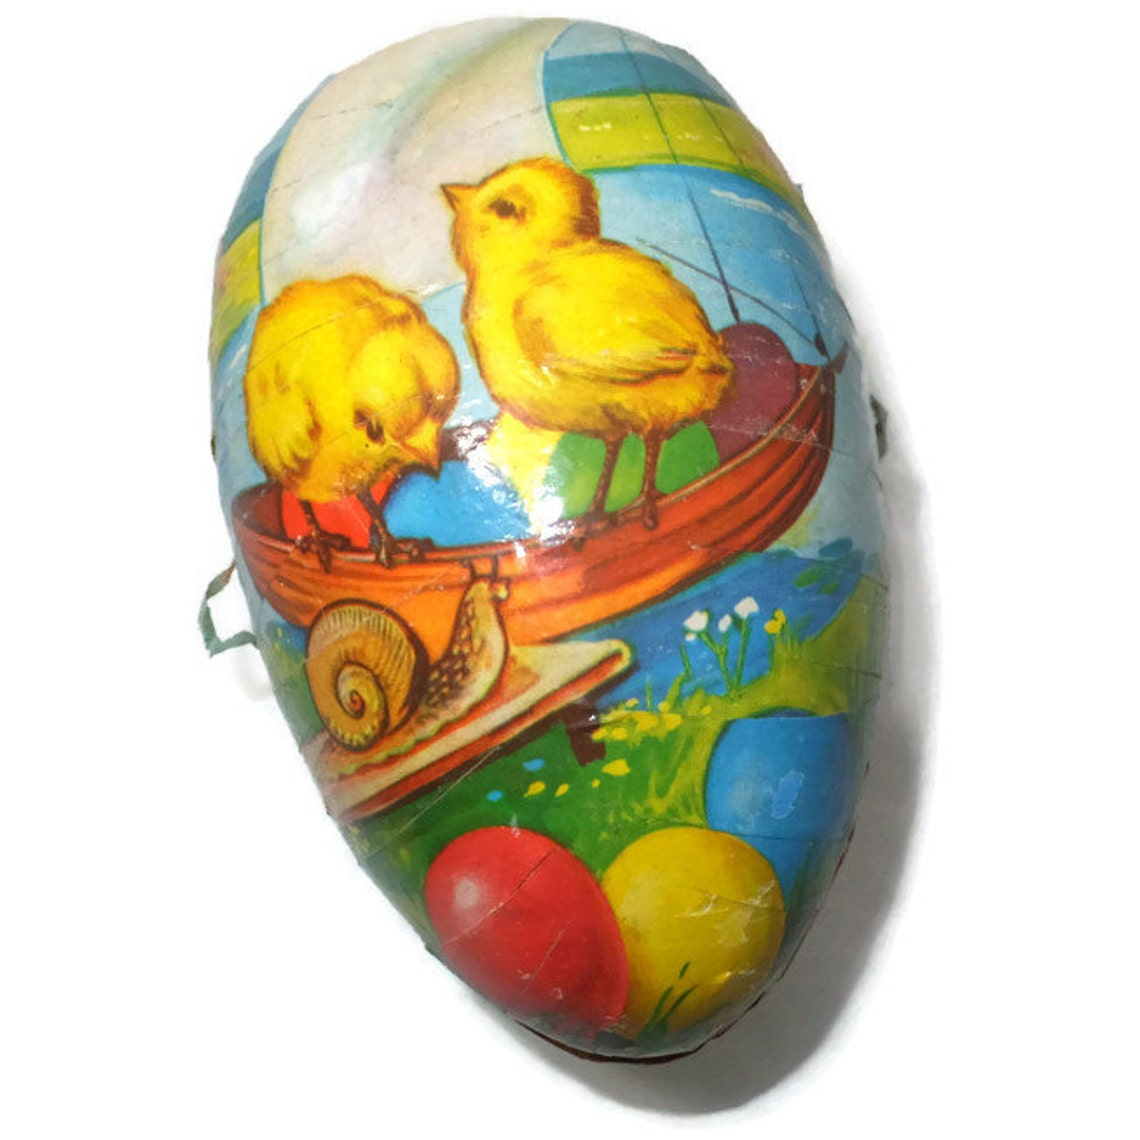 intage German Easter Egg - Paper Mache Egg, Candy Container Made in Western Germany, Chicks and Snail,